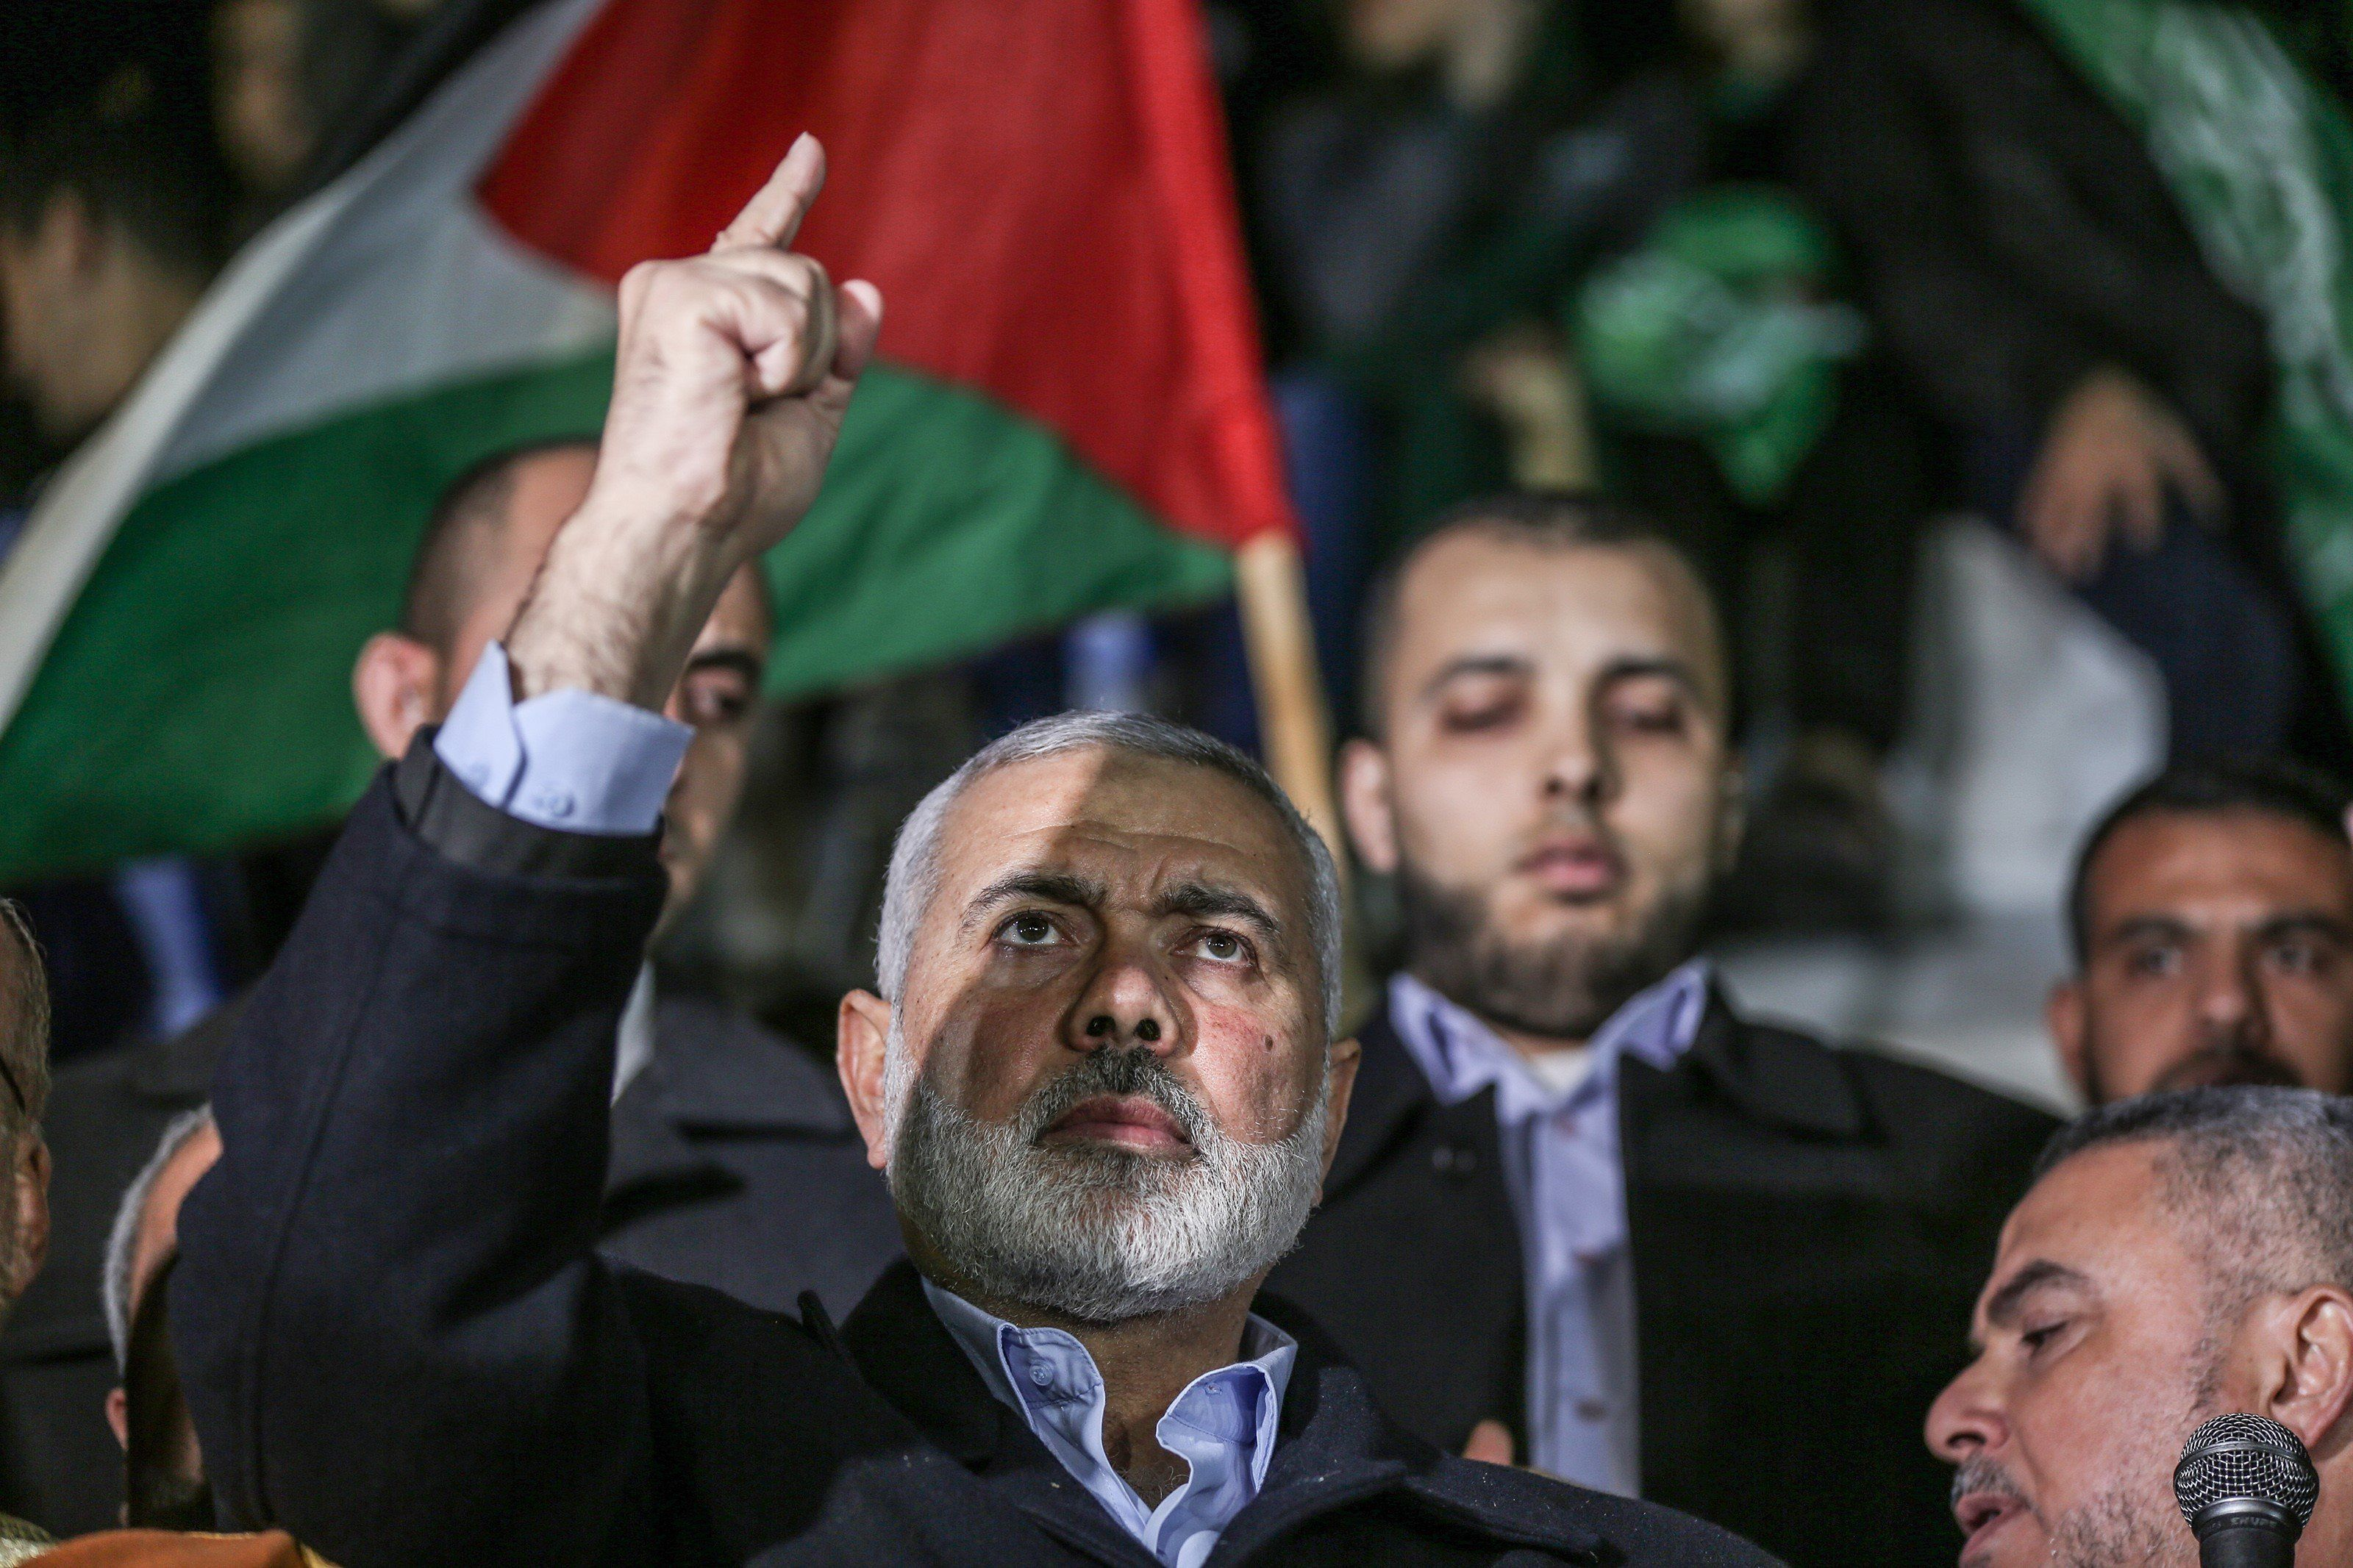 GAZA CITY, GAZA - DECEMBER 6: Head of the Political Bureau of Hamas, Ismail Haniyeh attends a protest against US President Donald Trumps recognition of Jerusalem as Israels capital, in Gaza City, Gaza on December 6, 2017. (Photo by Ali Jadallah/Anadolu Agency/Getty Images)